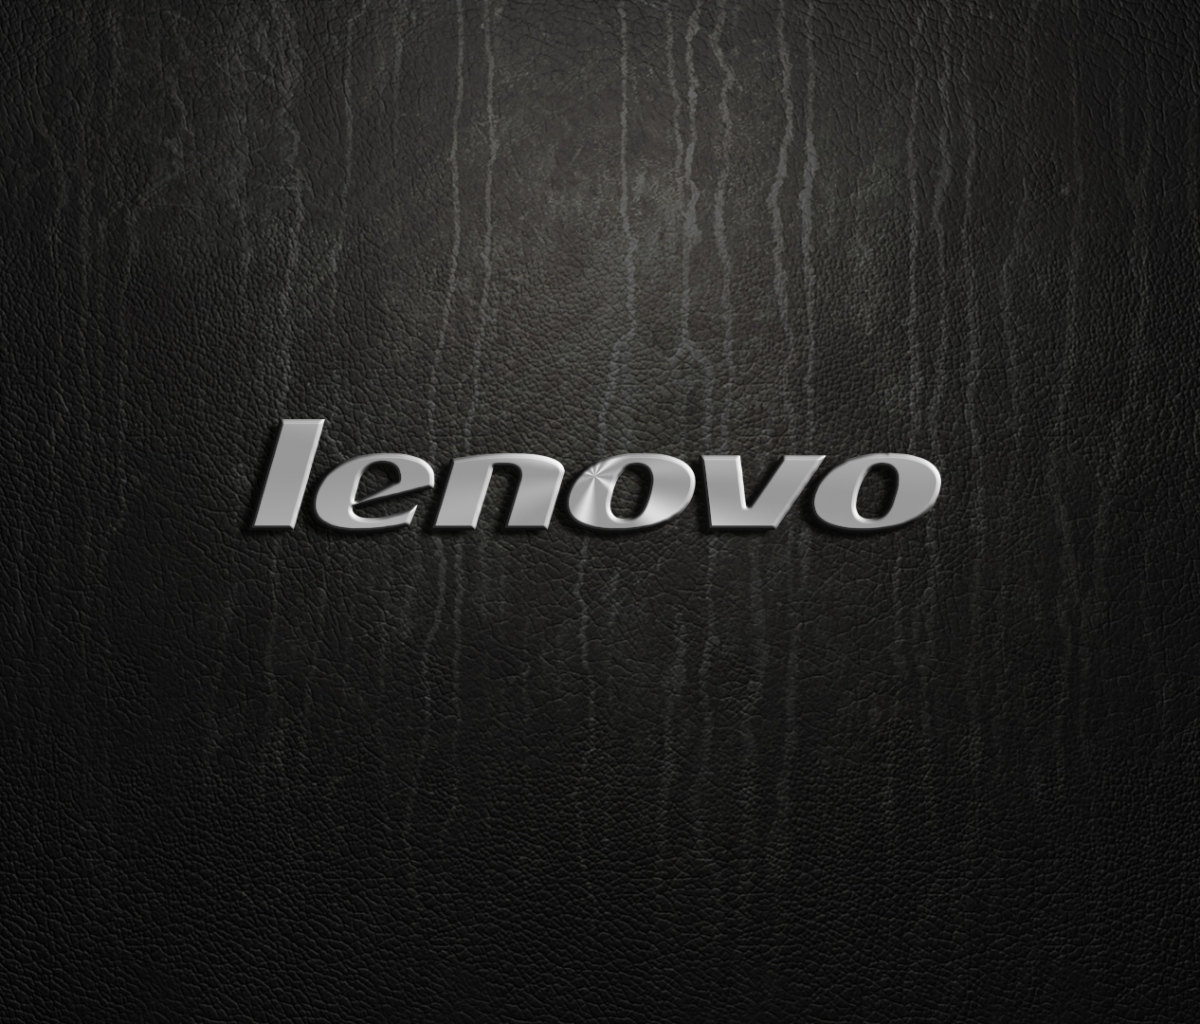 Productslenovo 1200x1024 wallpaper id 639955 mobile abyss products lenovo 1200x1024 mobile wallpaper voltagebd Images